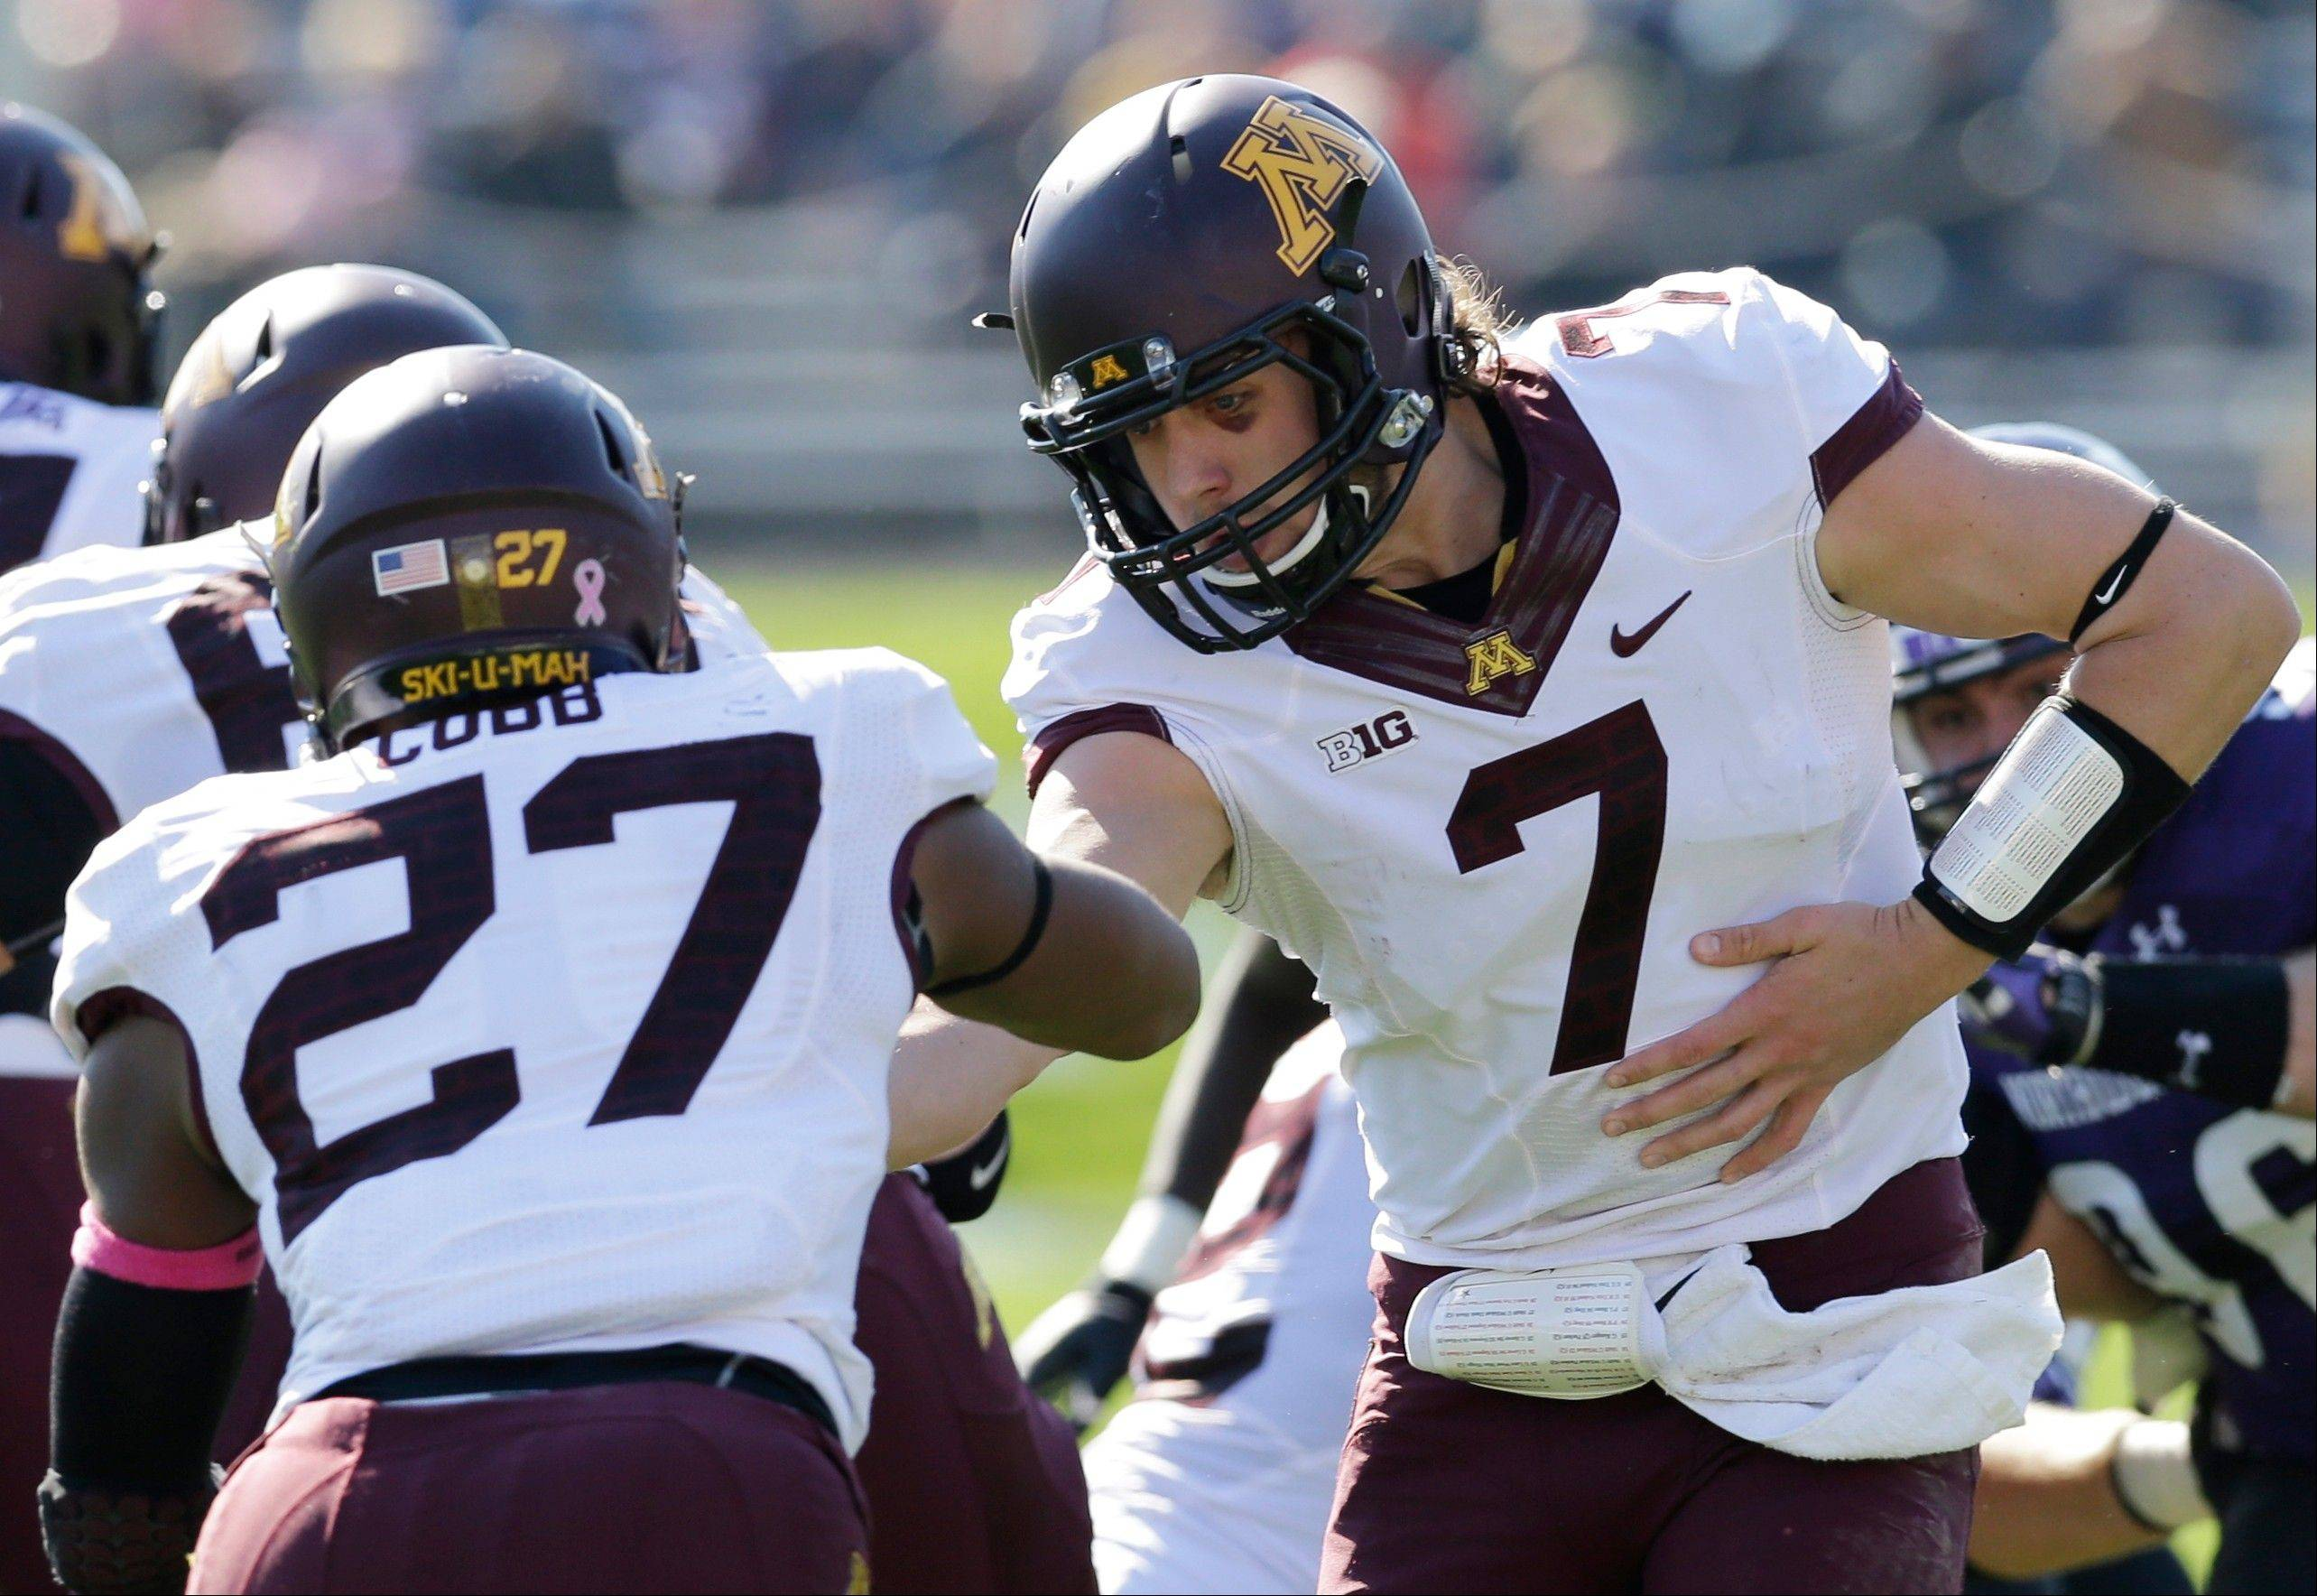 Minnesota quarterback Mitch Leidner (7) hands off the ball to running back David Cobb (27) during the first half of an NCAA college football game against Northwestern in Evanston, Ill., Saturday, Oct. 19, 2013. (AP Photo/Nam Y. Huh)